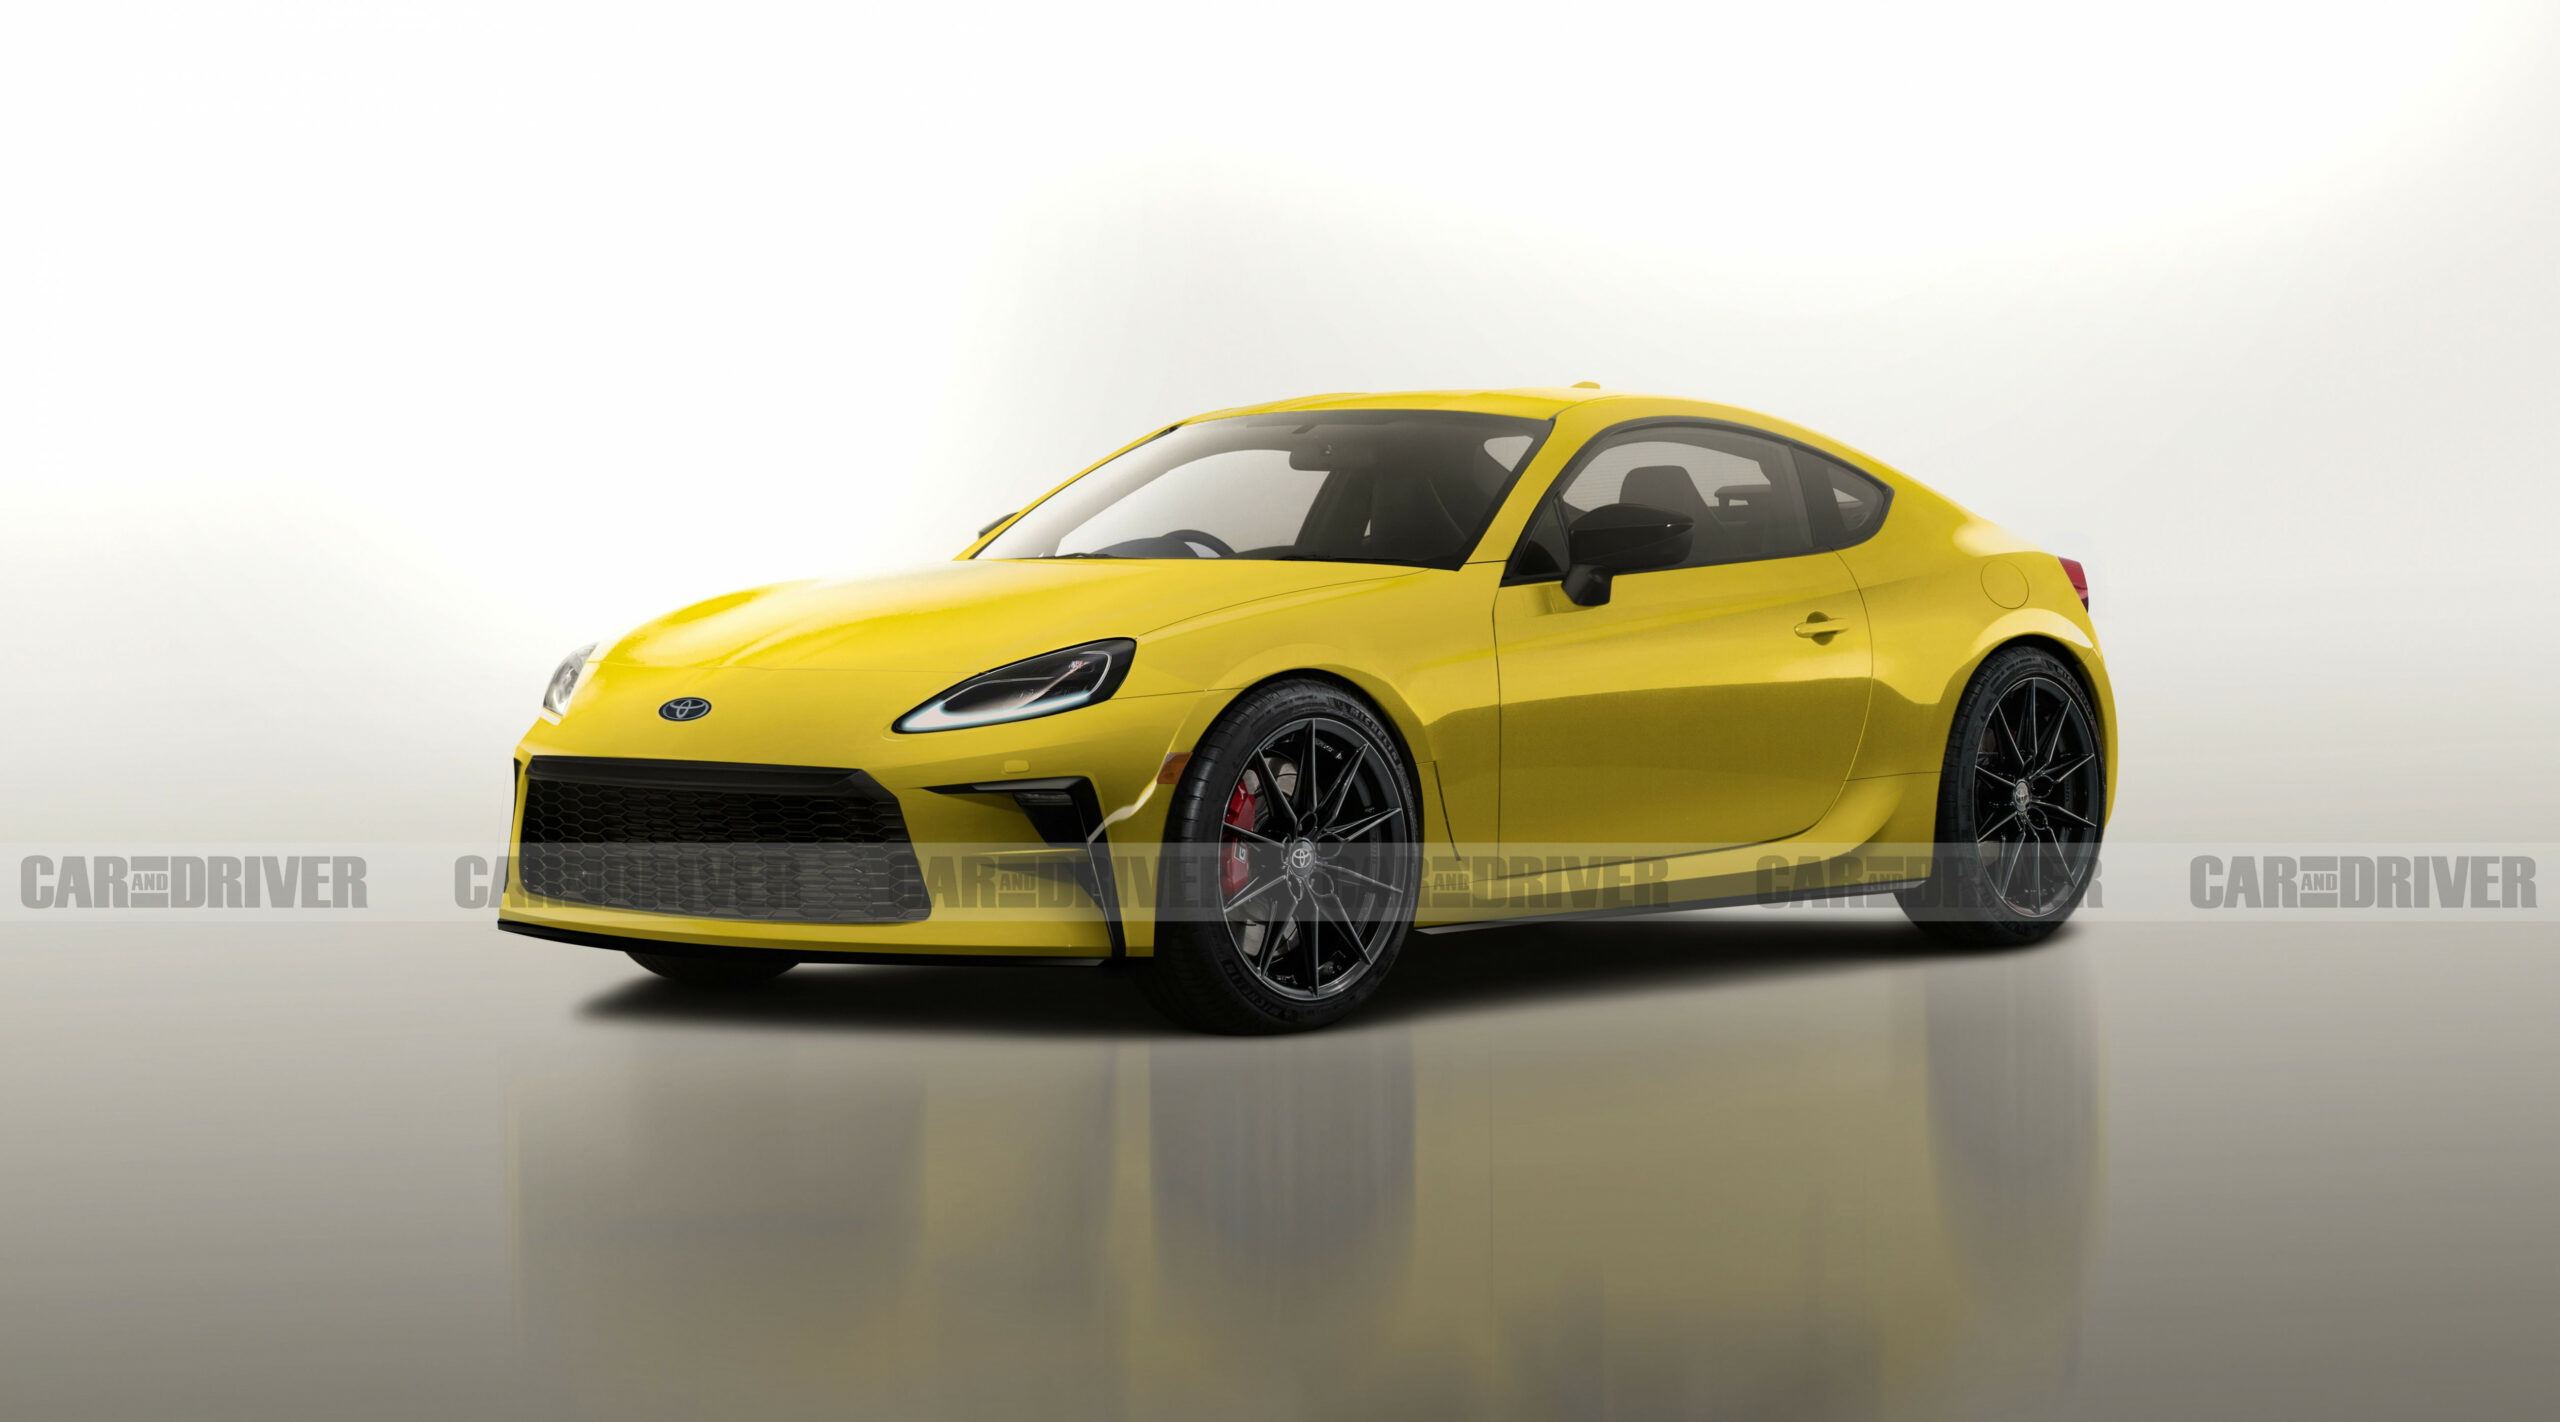 Configurations 2022 Scion FR-S